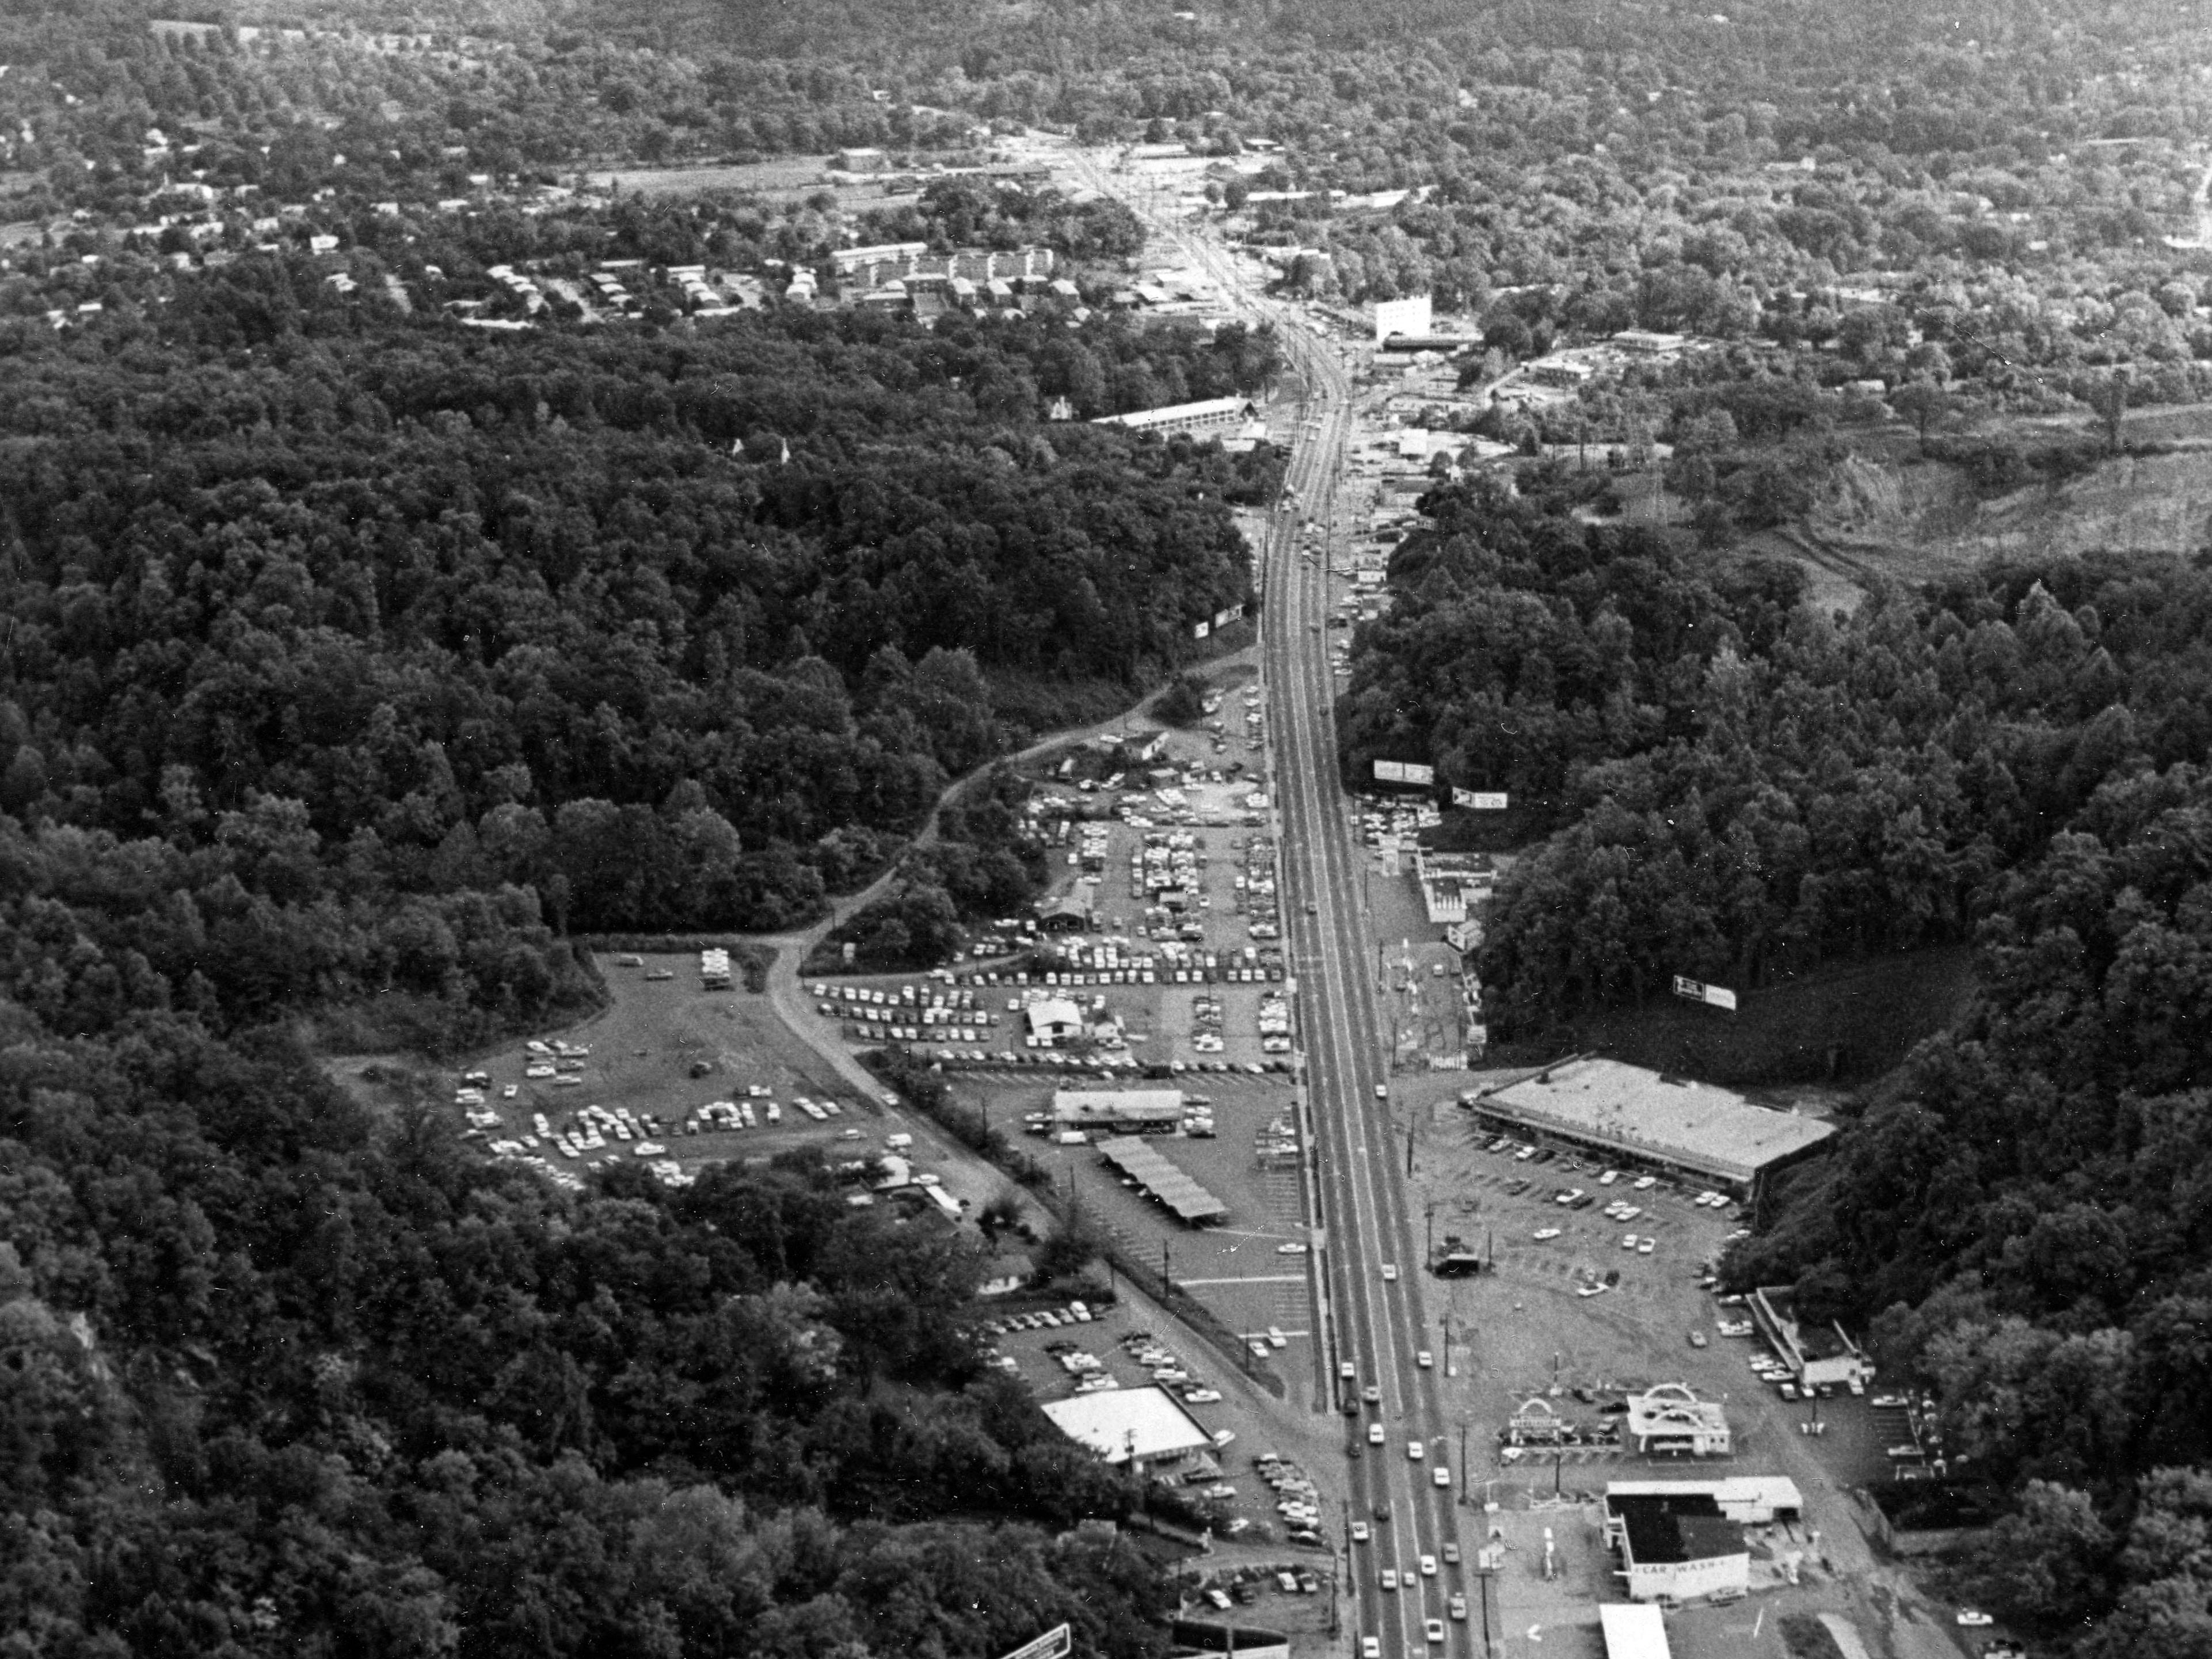 Chapman Highway looking south in 1968